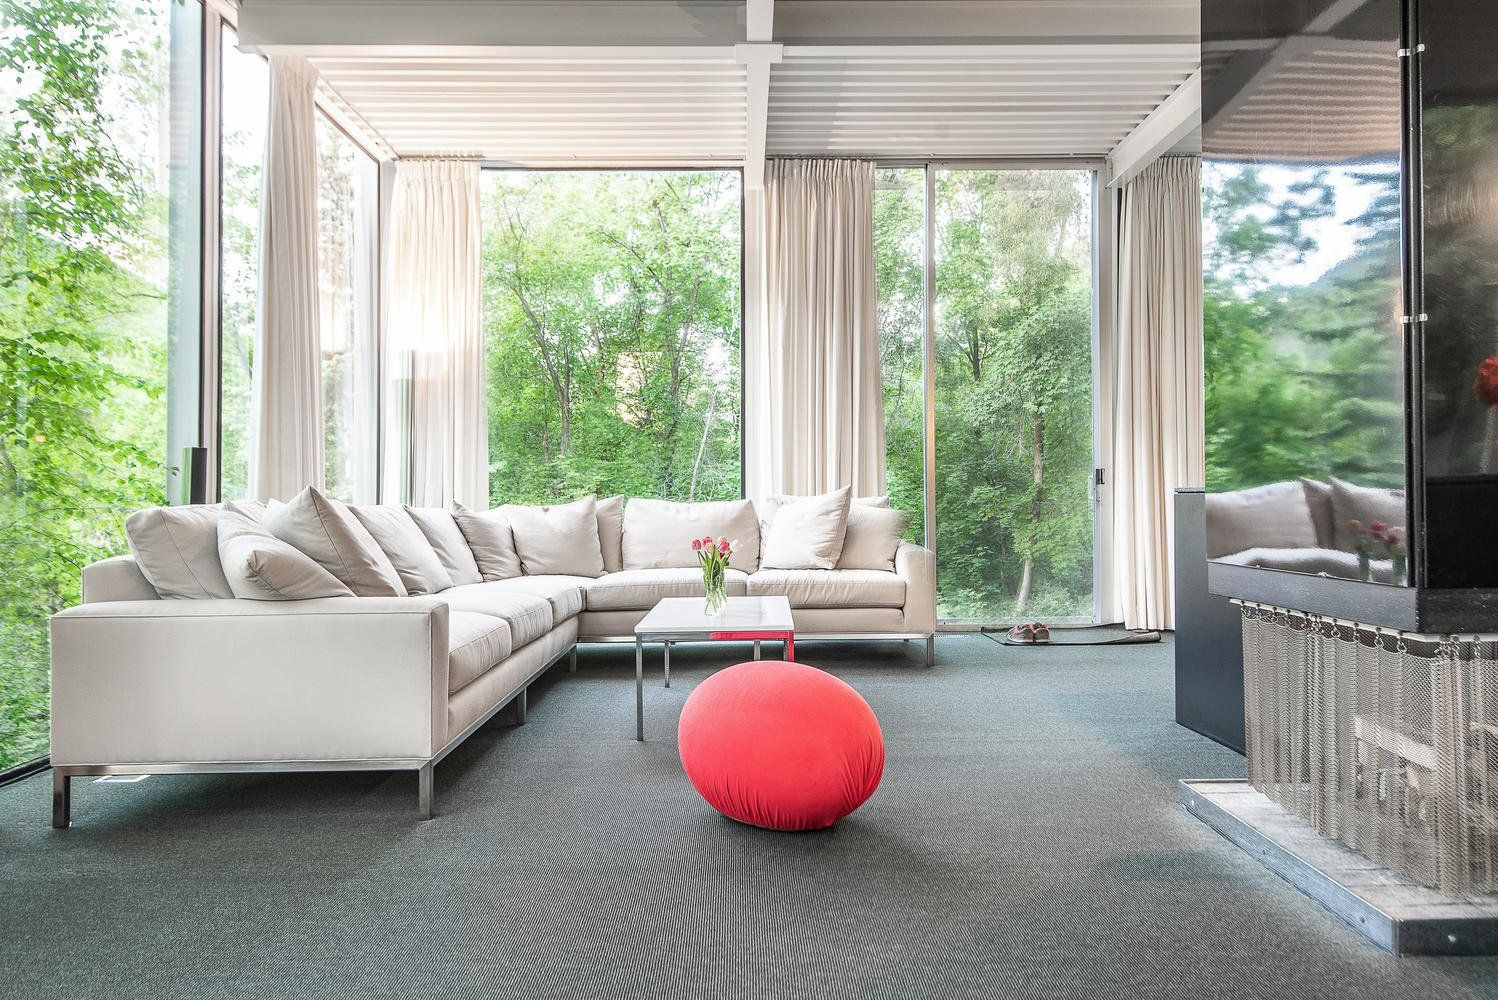 Own this iconic glass home in salt lake city for k in